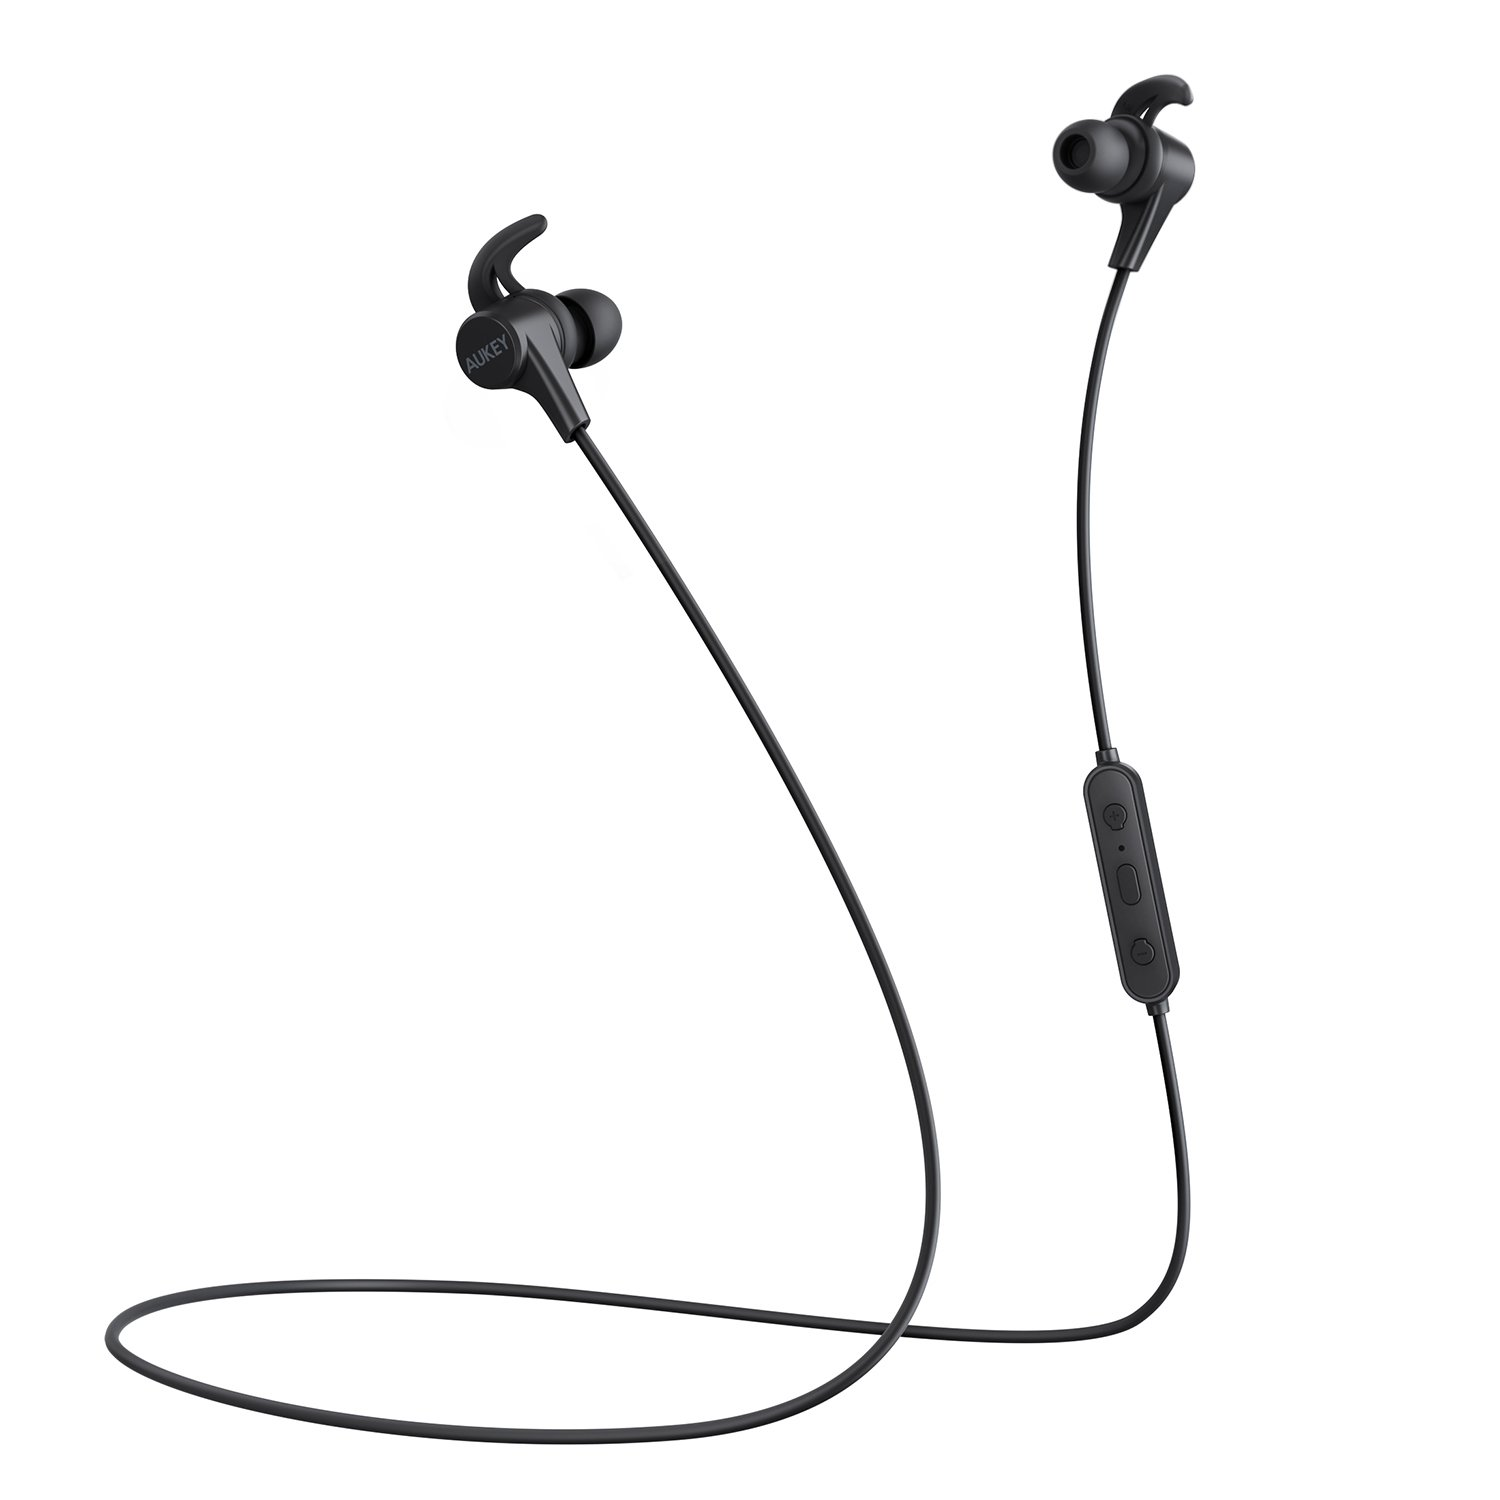 AUKEY Latitude Wireless Headphones, 3 EQ Sound Modes, aptX Sweat-Resistant Nano Coating, Secure Fit Bluetooth Sports Earbuds, 8-Hour Battery Life